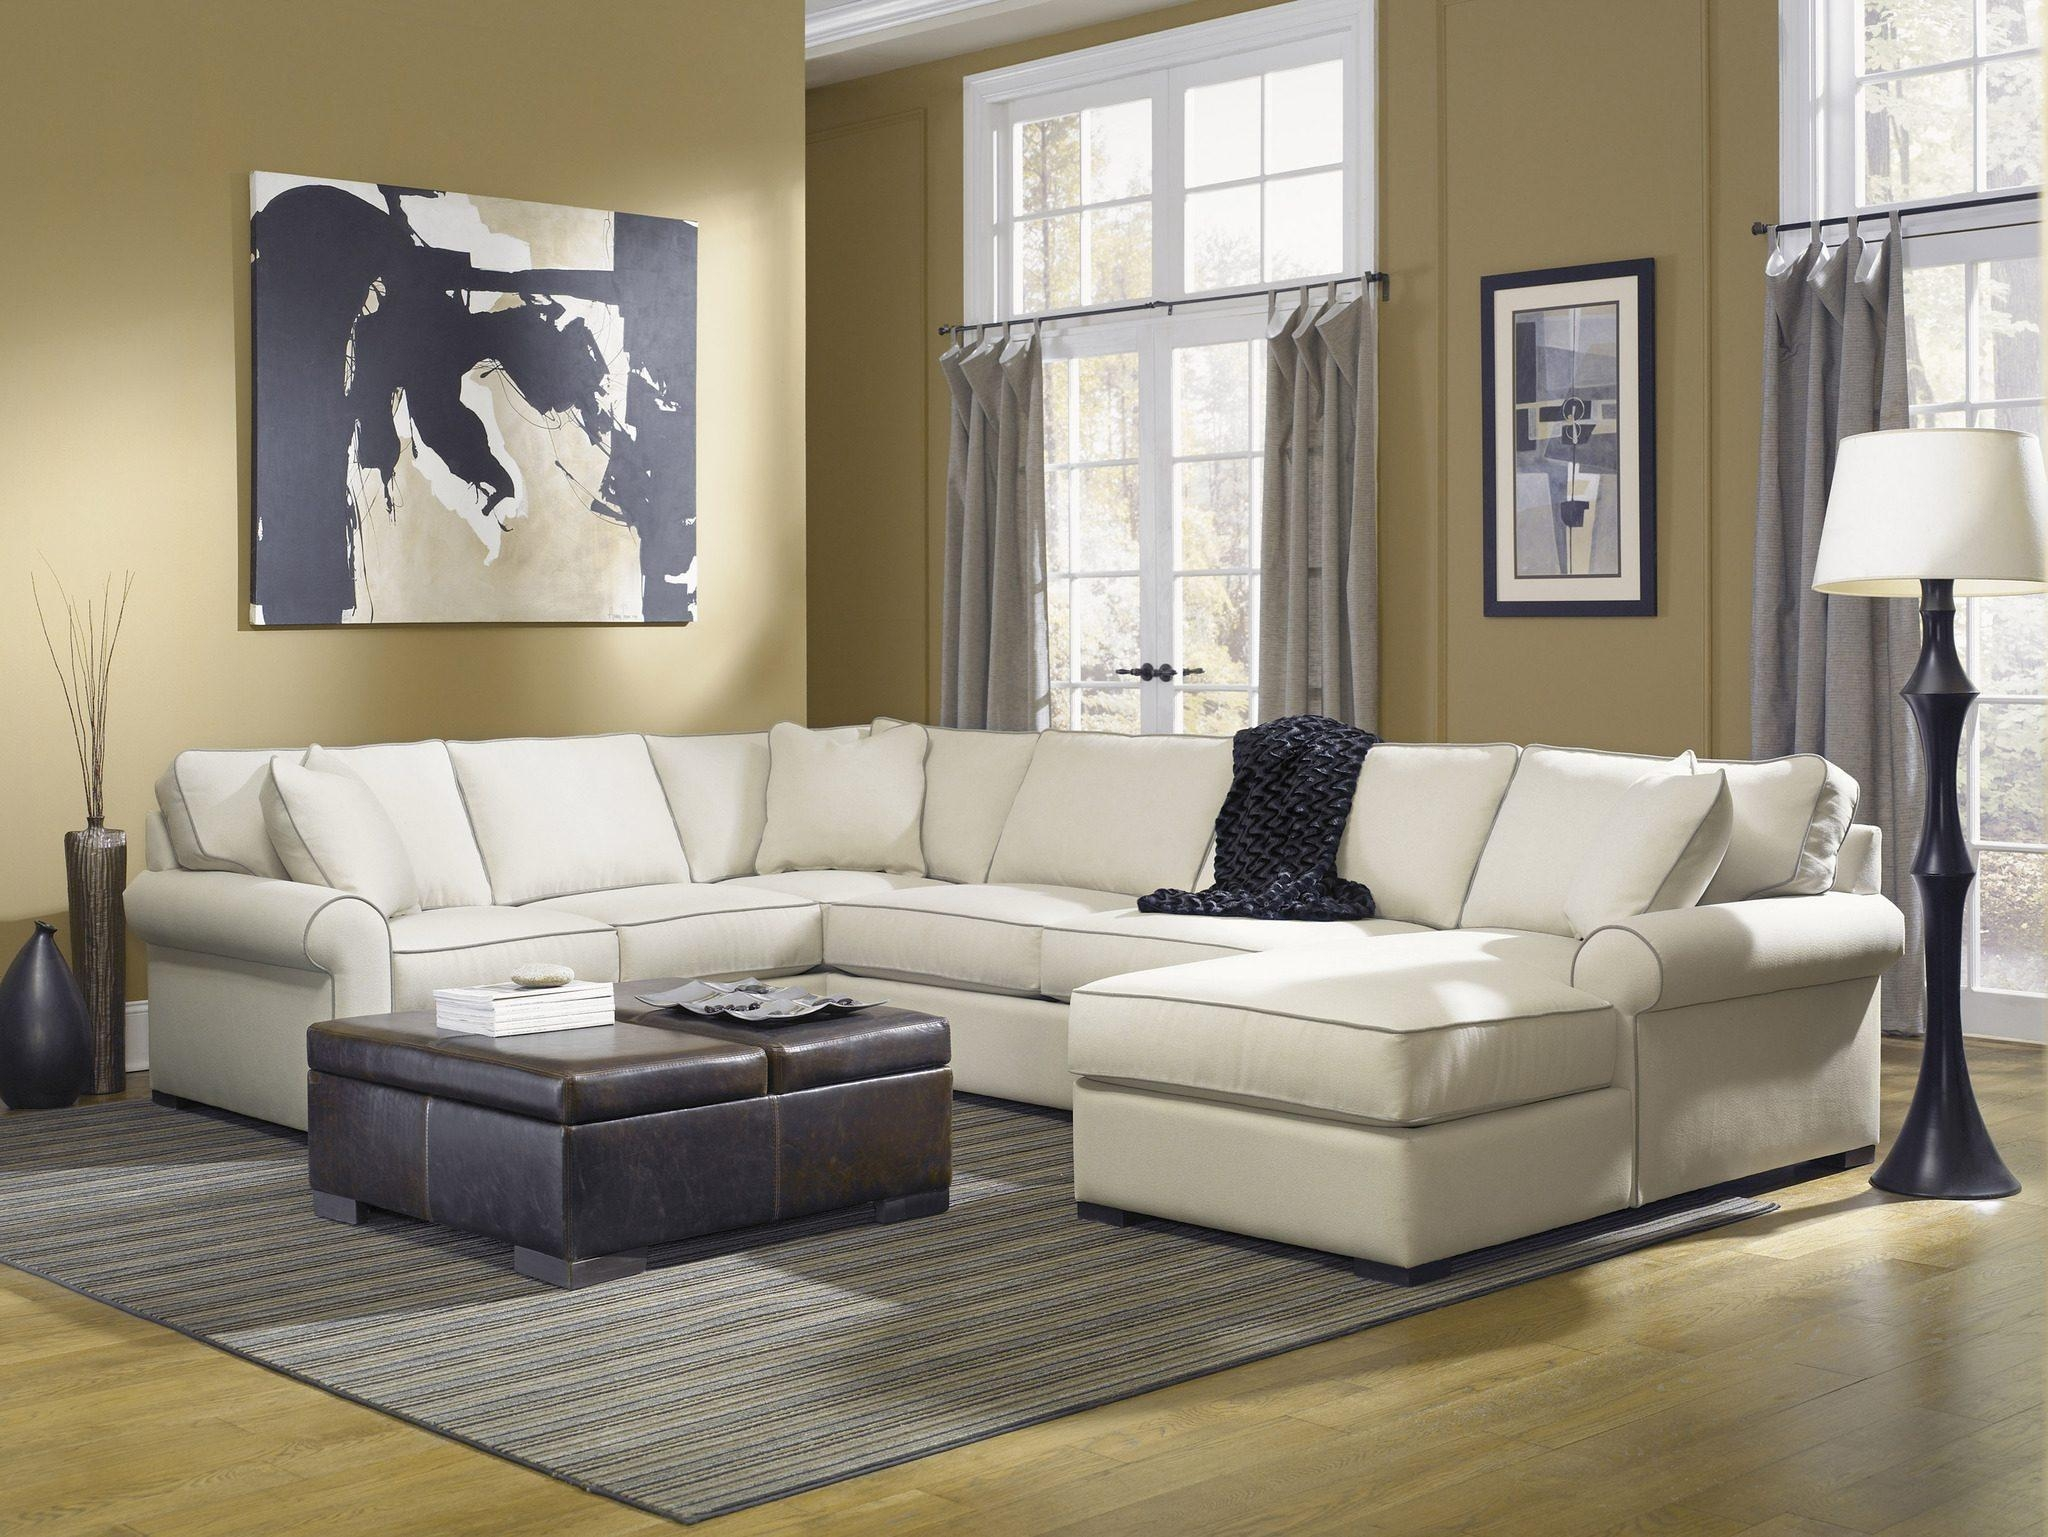 Furniture: Robert Michaels Furniture | Down Filled Couches | Down Regarding Down Feather Sectional Sofa (Image 5 of 15)